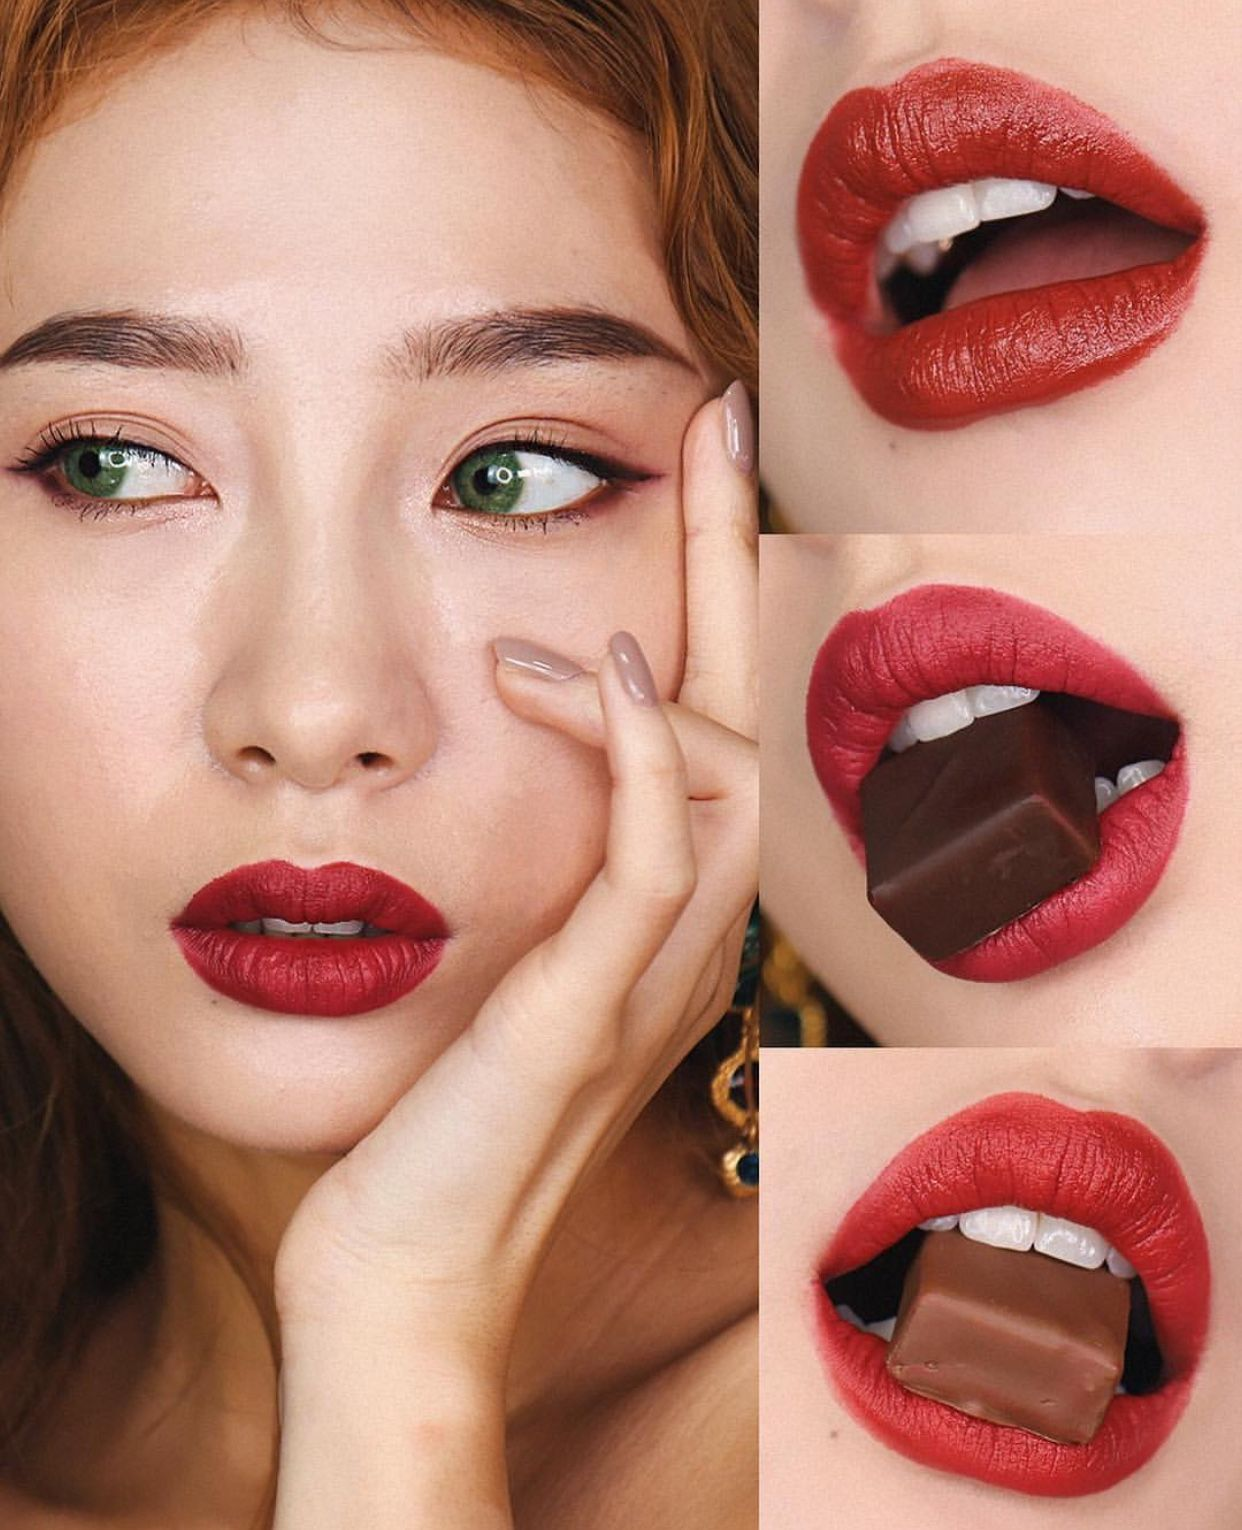 Korean makeup with red lips 👄 口紅